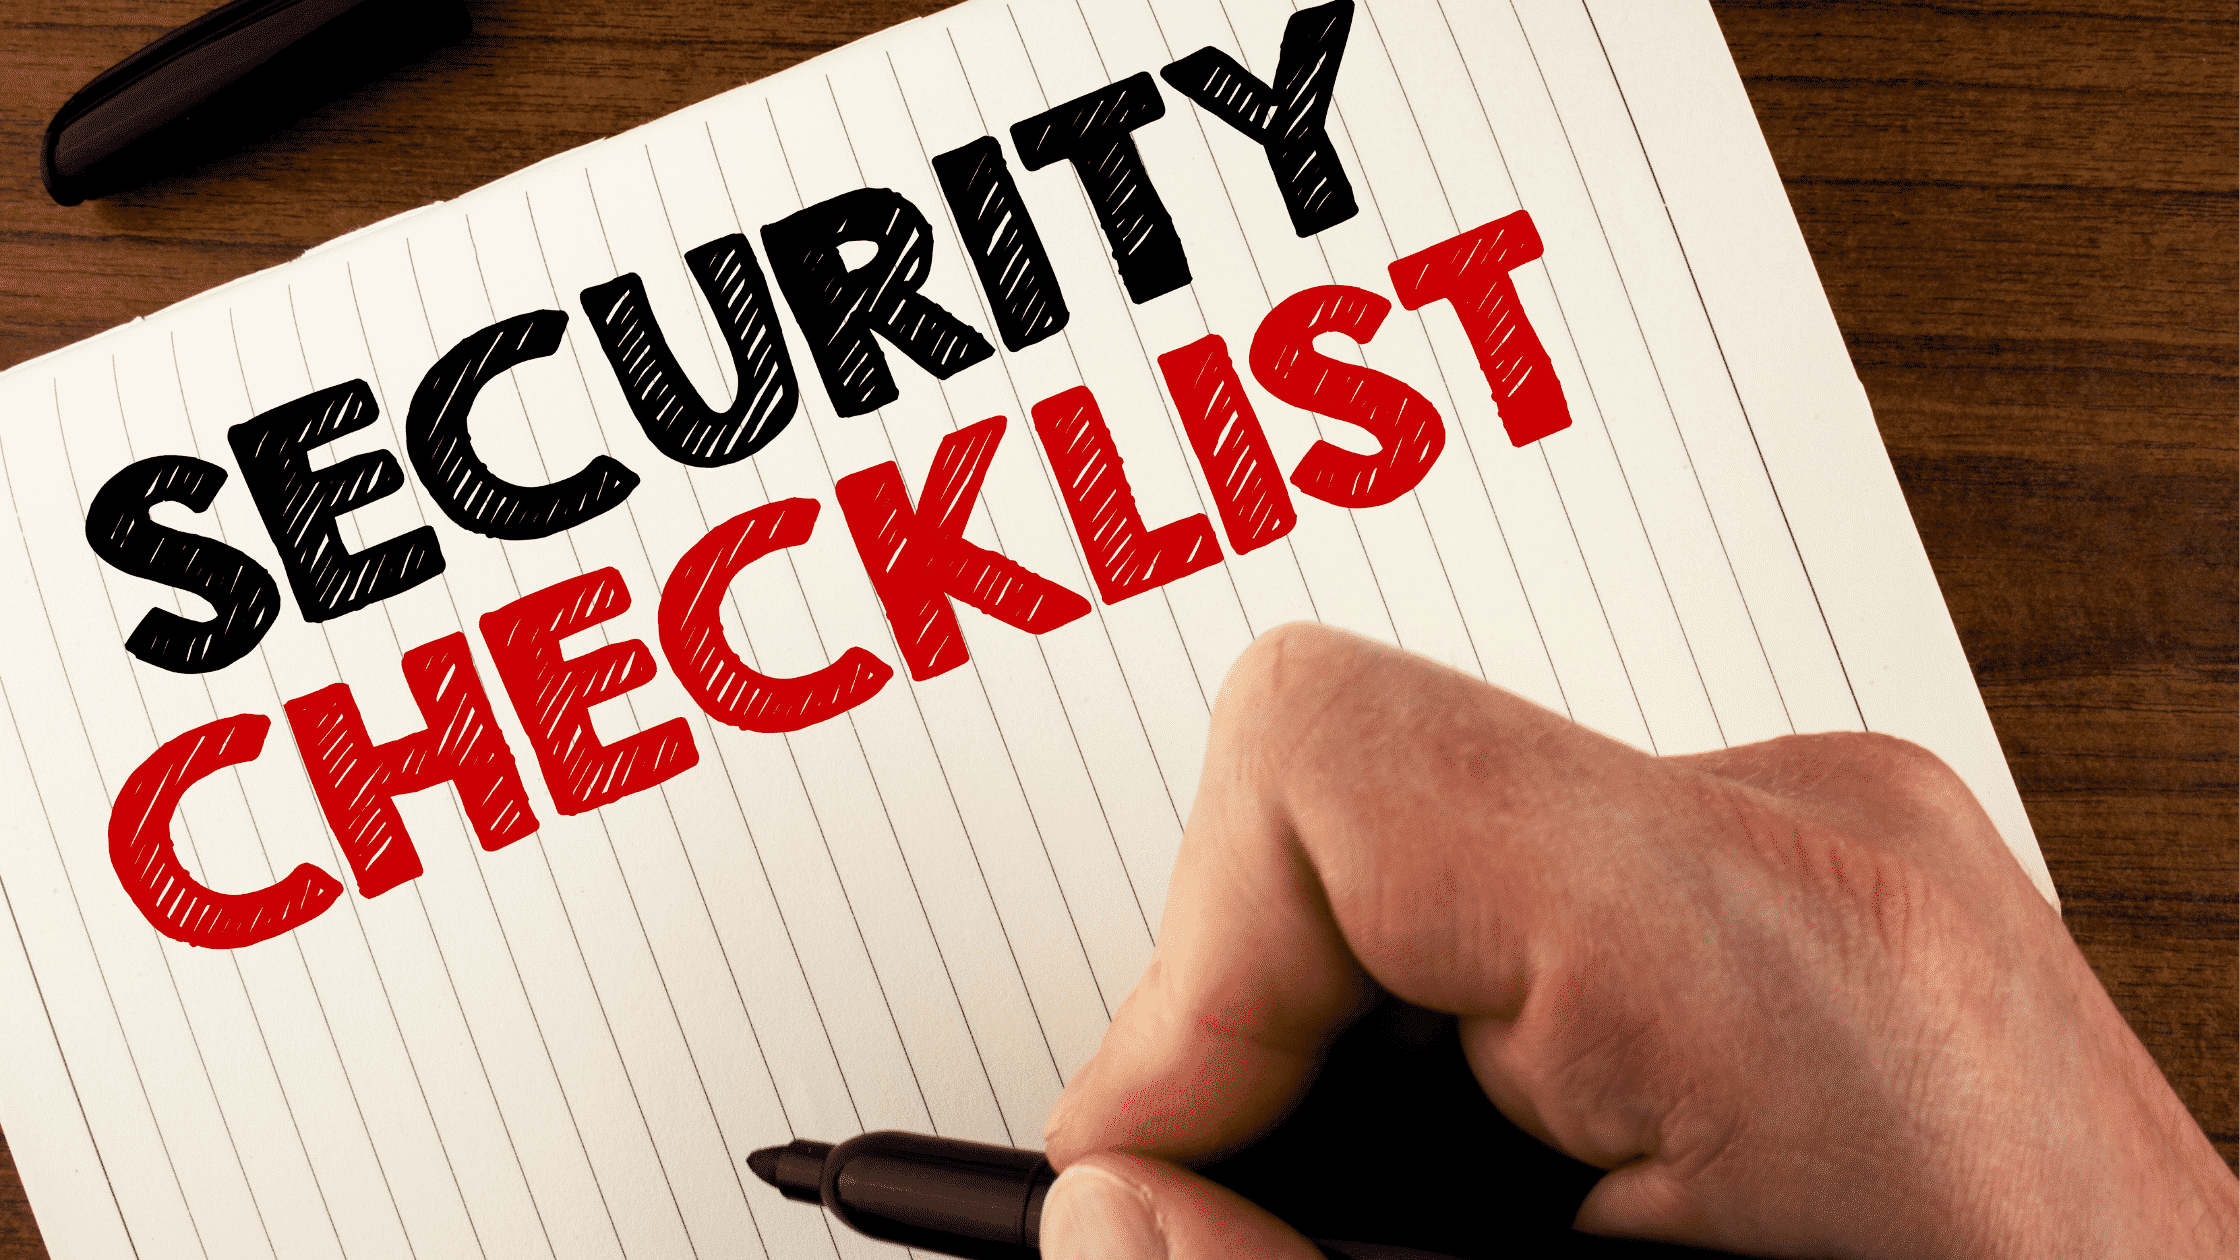 Notepad With Security Checklist Title